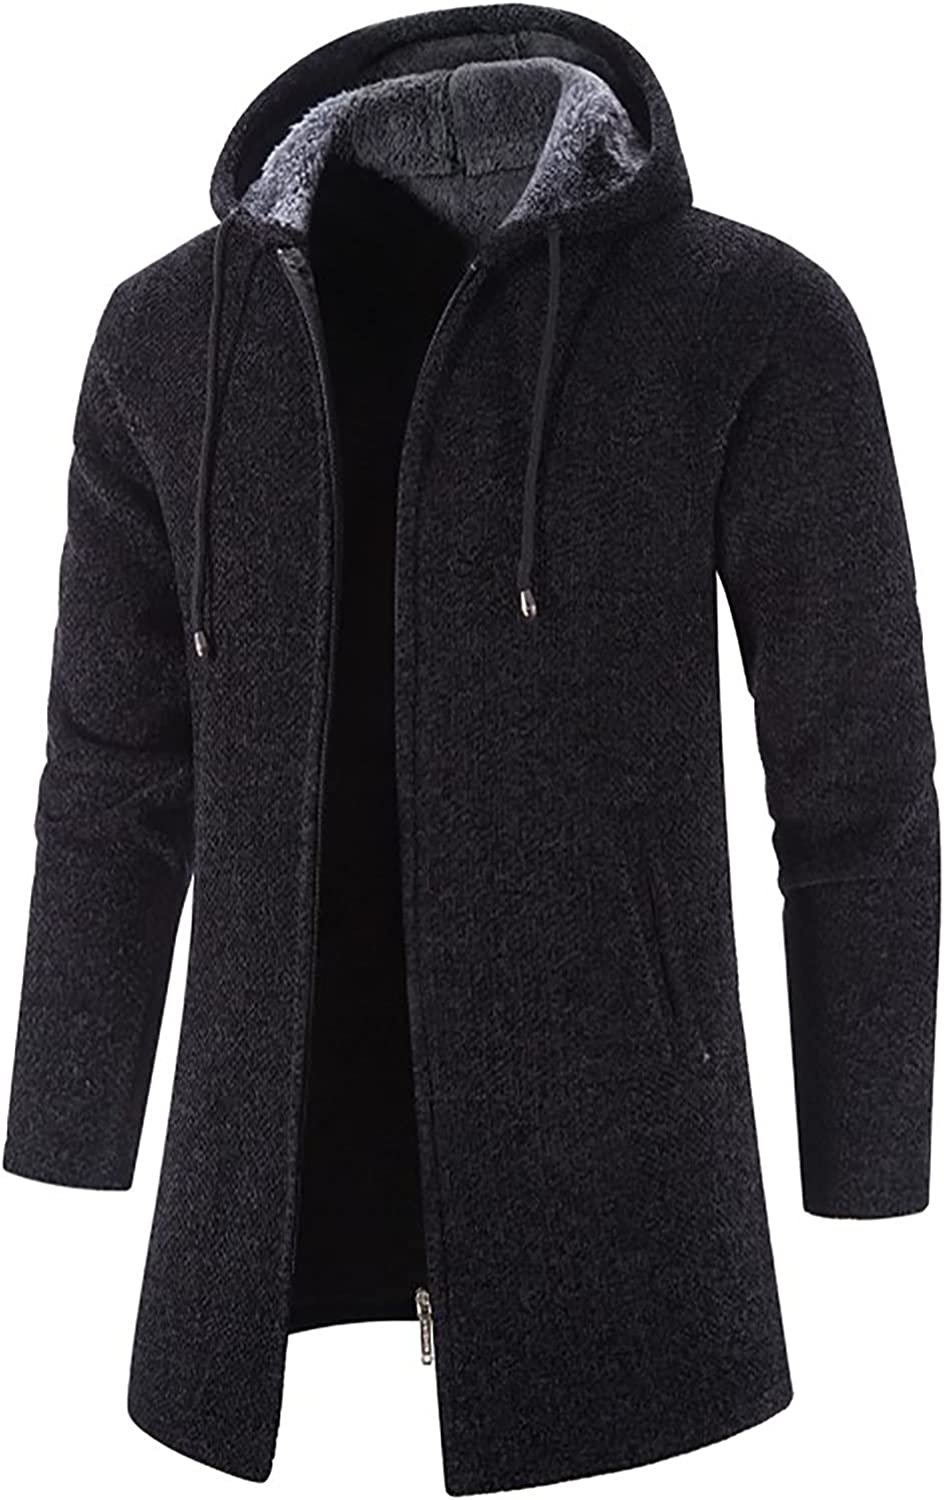 Men's Solid Color Hooded Jacket Windbreaker Mid-Length Hooded Coat Fashion Casual Full Zipper Cardigan with Pockets